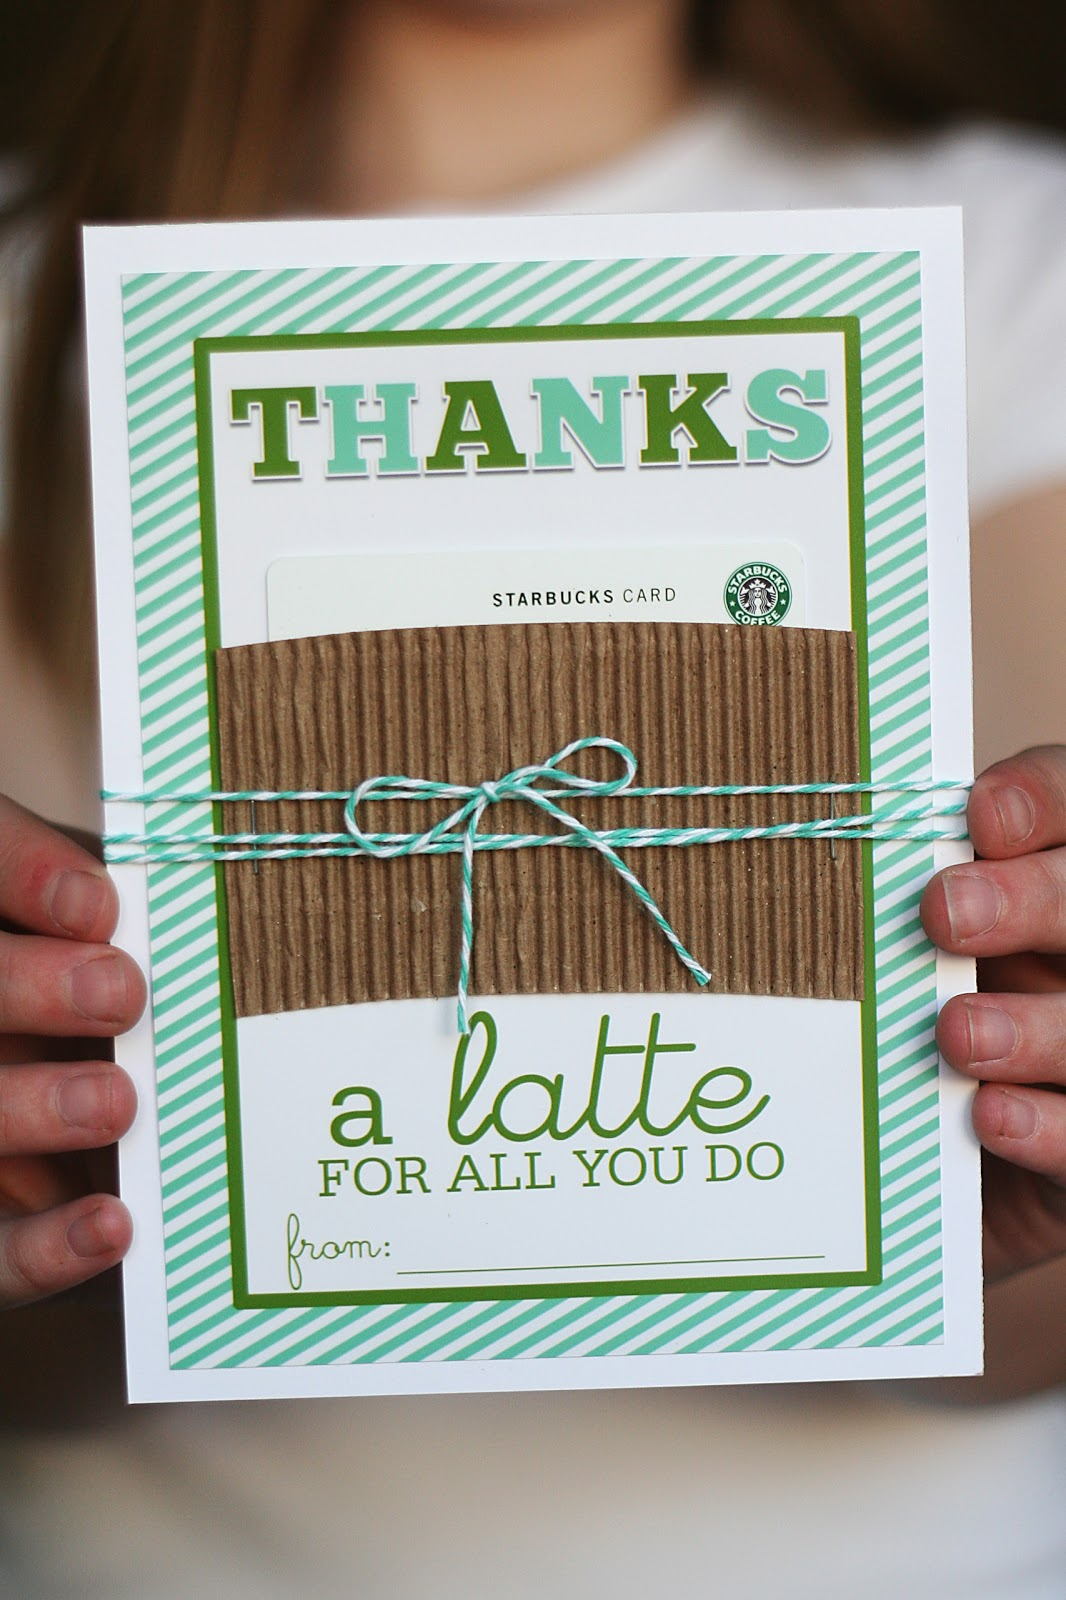 Gifts for Teacher Appreciation Week | Thanks a latte for all you do